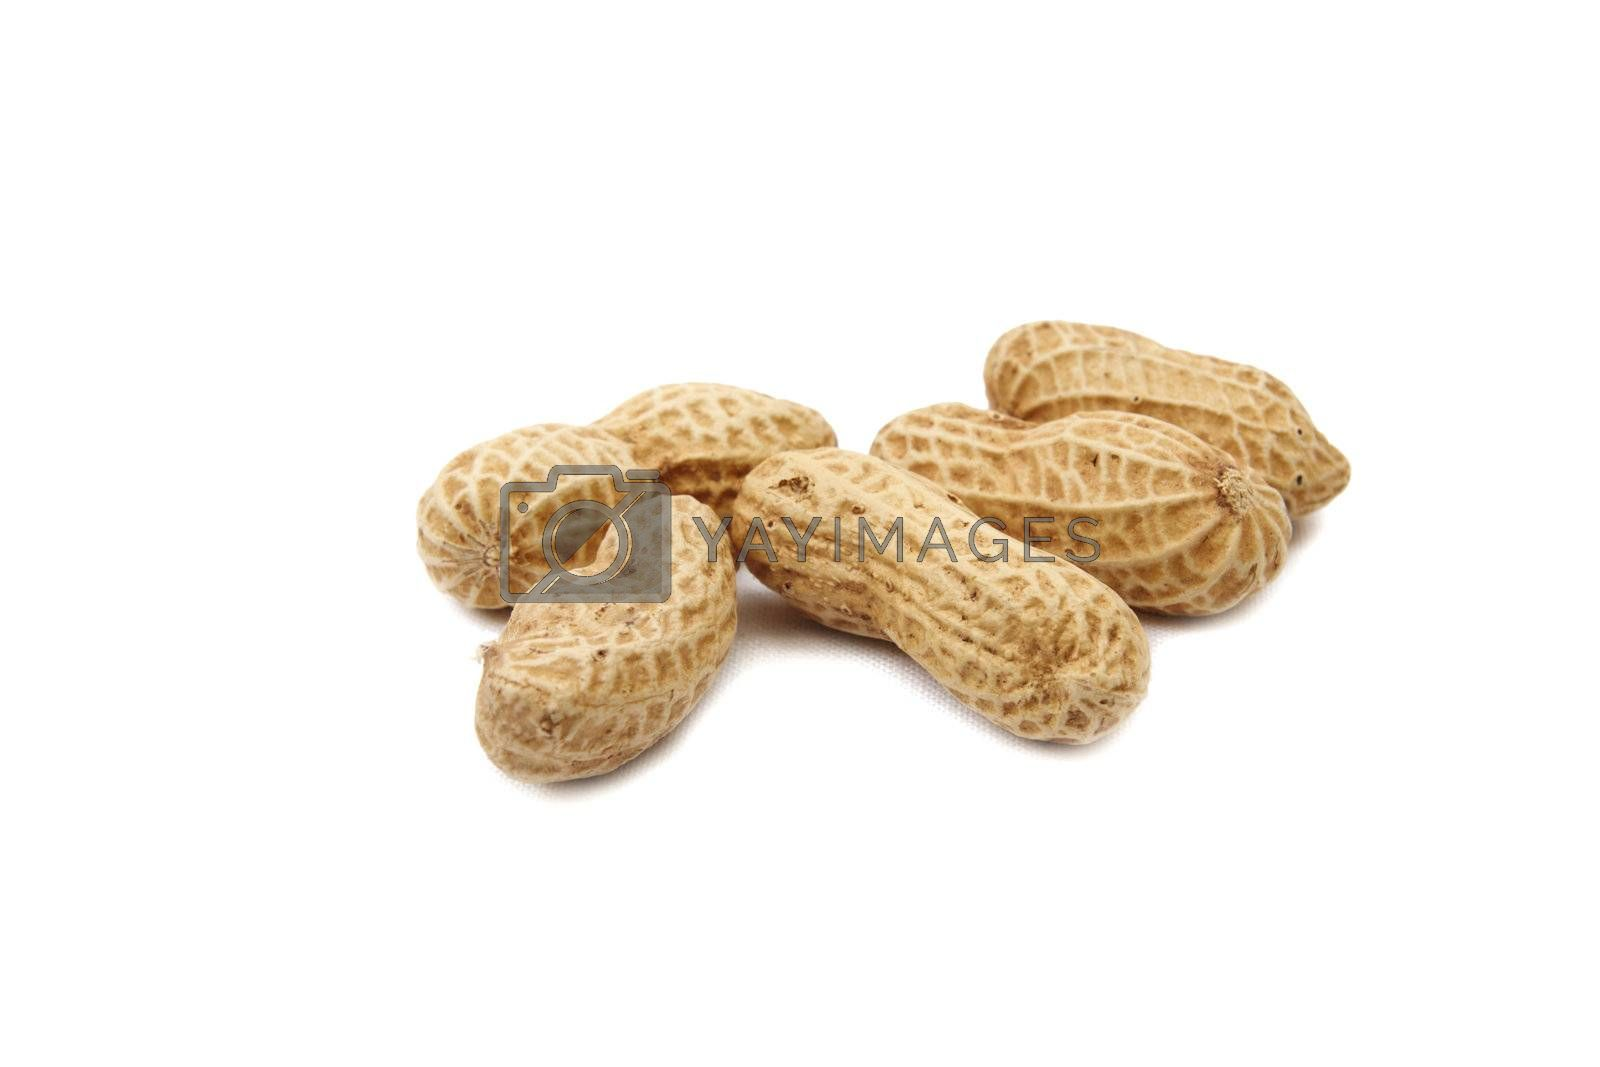 Few peanuts isolated on white background. Close up image